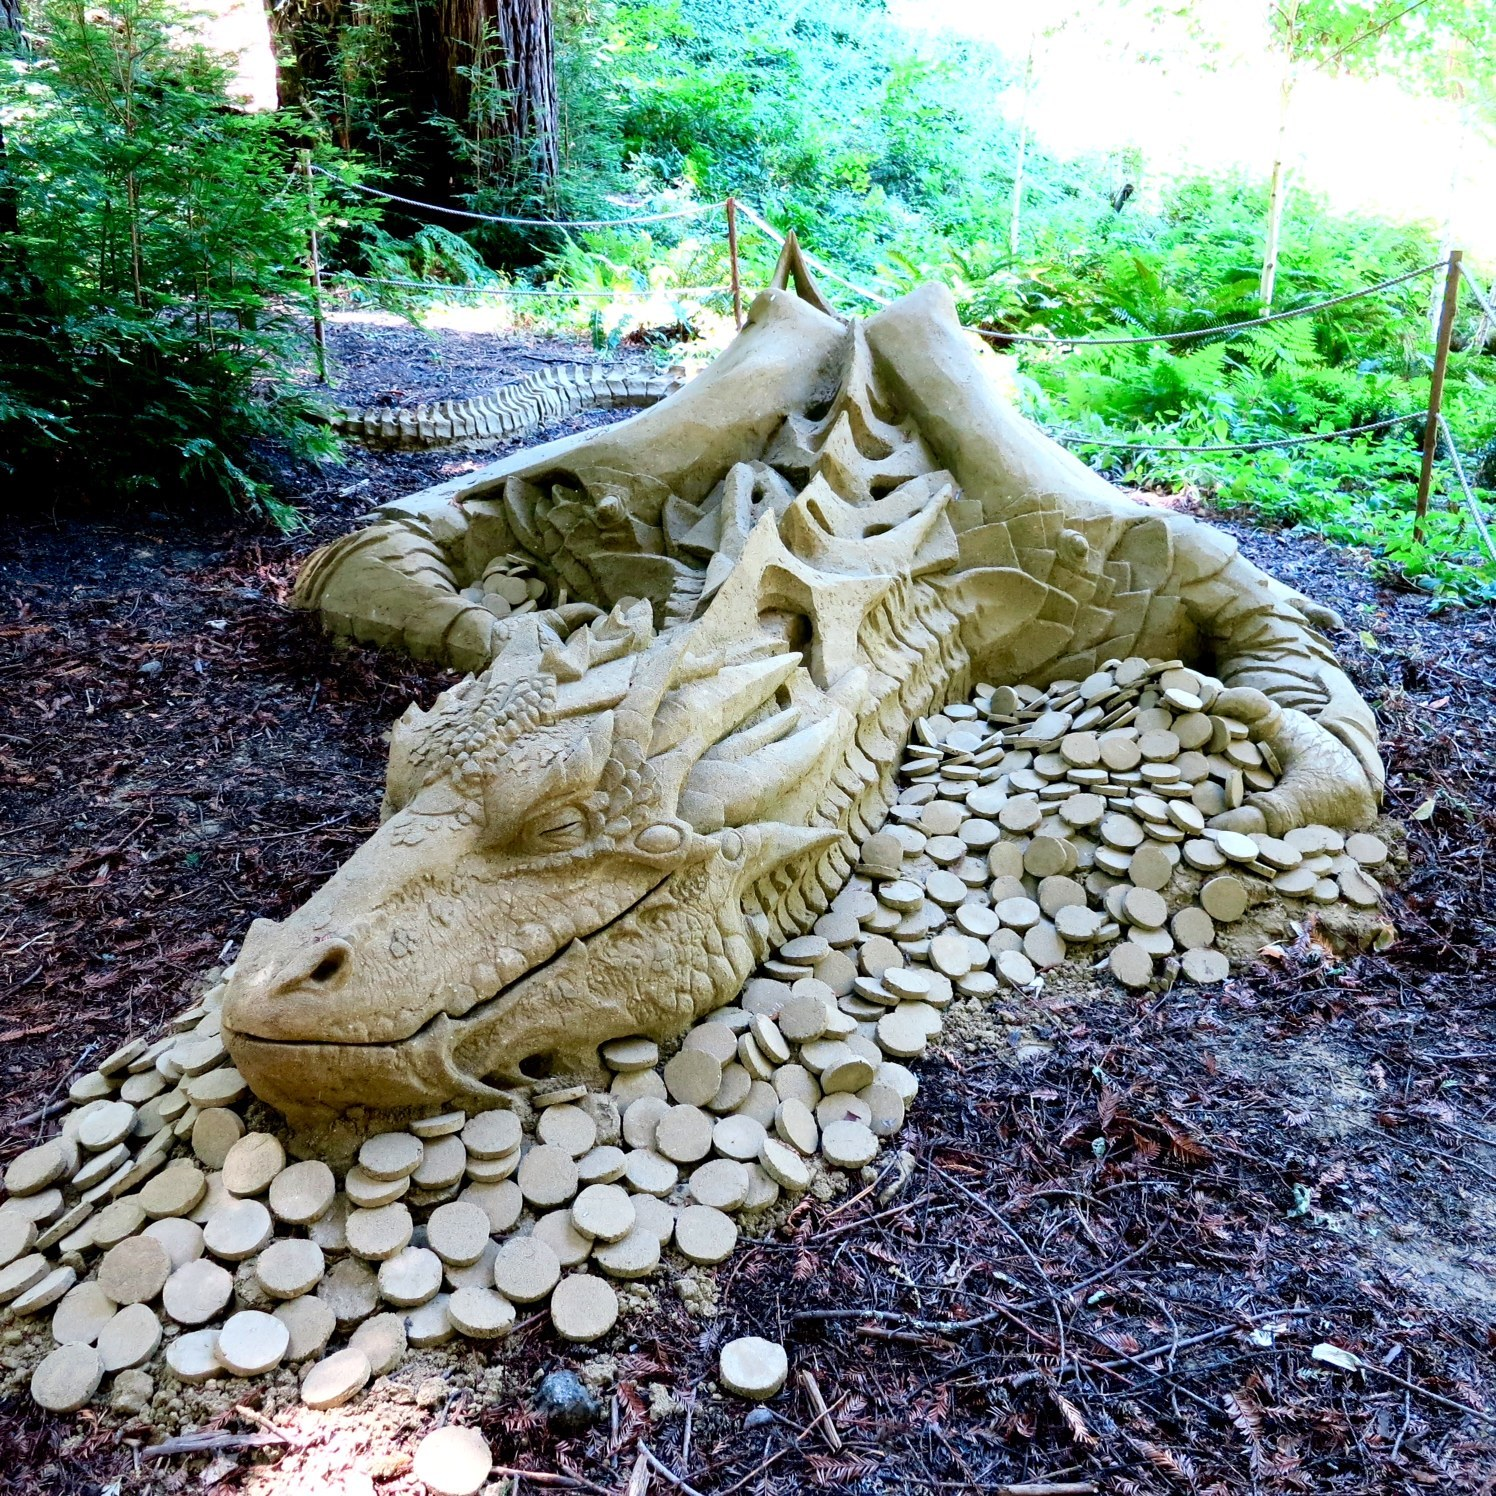 Dragon sand sculpture at Nestldown in Santa Cruz by Rusty Croft, Carmel, Ca